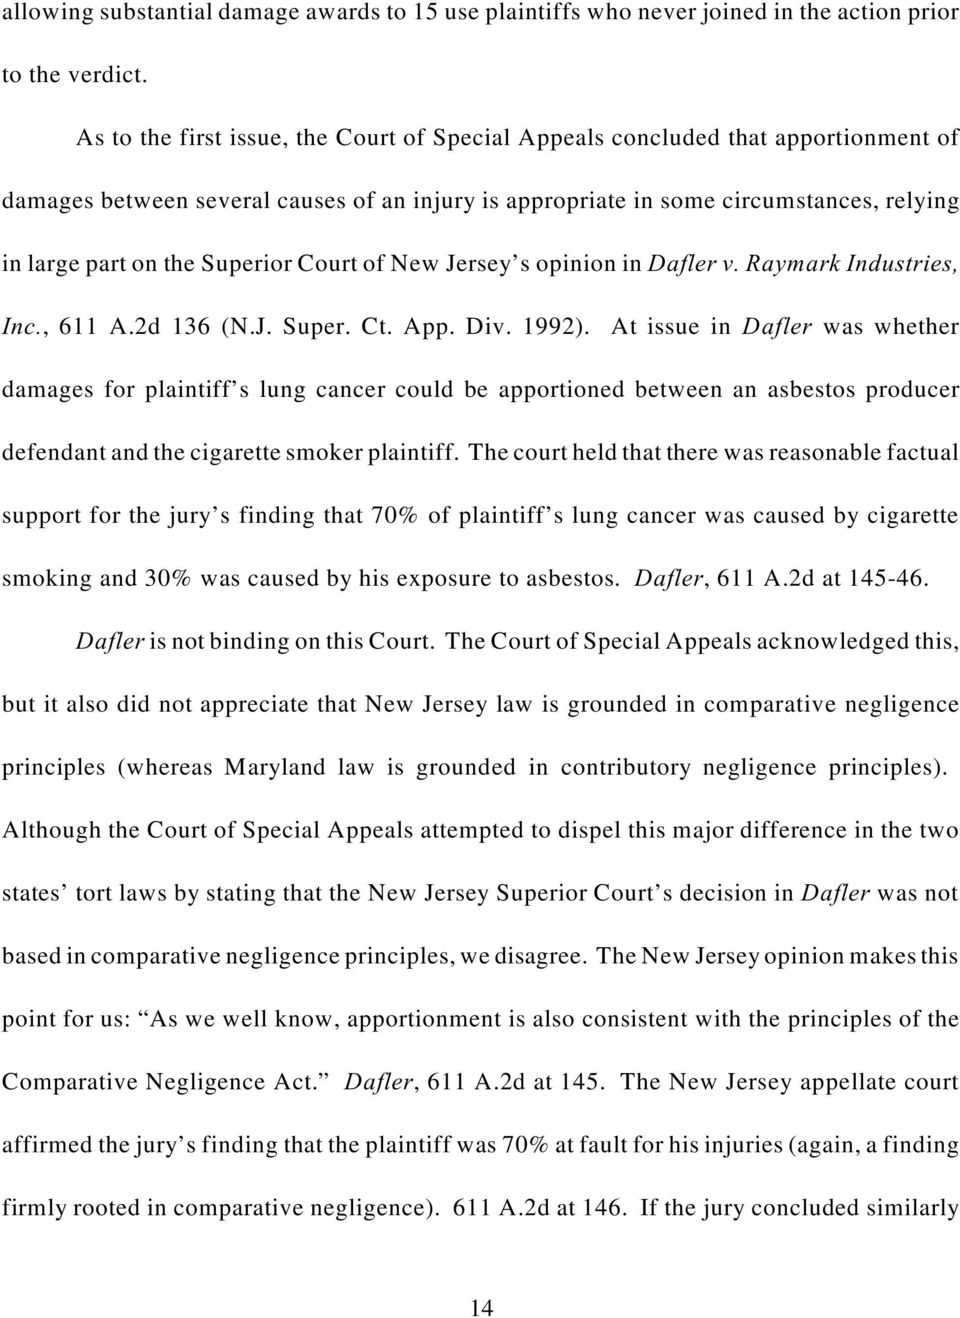 Superior Court of New Jersey s opinion in Dafler v. Raymark Industries, Inc., 611 A.2d 136 (N.J. Super. Ct. App. Div. 1992).